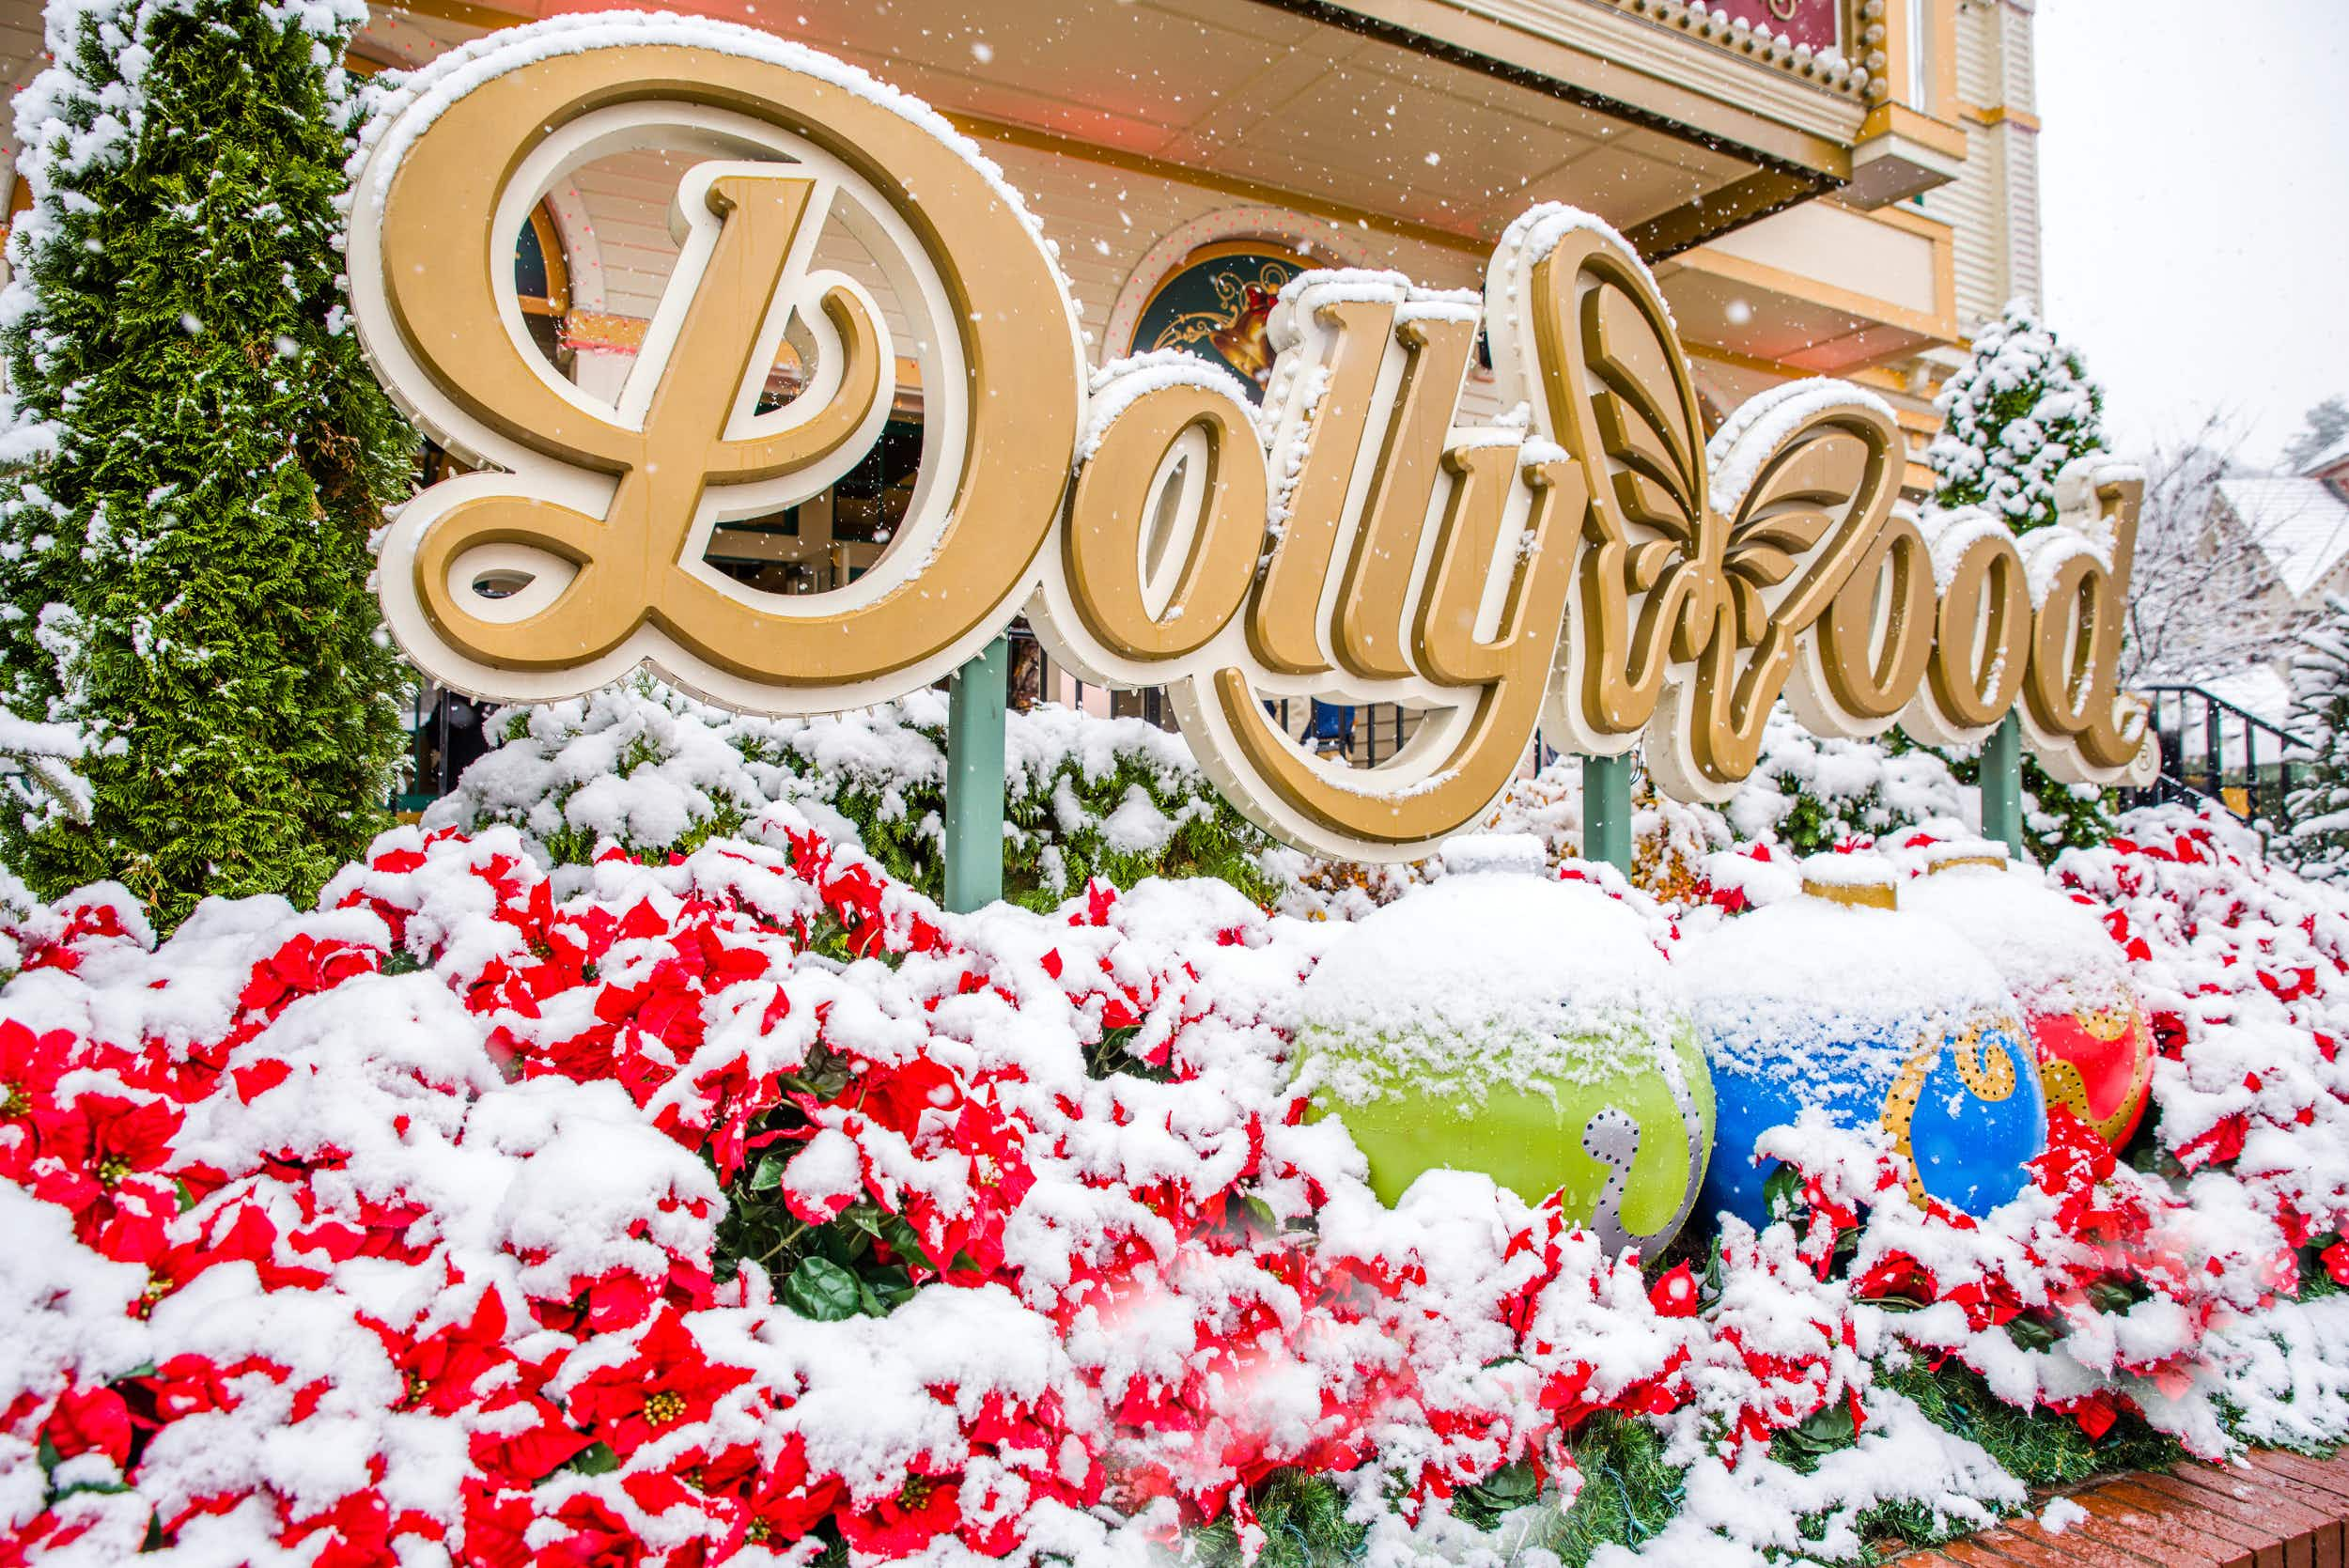 Loving Dolly Parton's America podcast? Plan a trip to Dollywood this Christmas